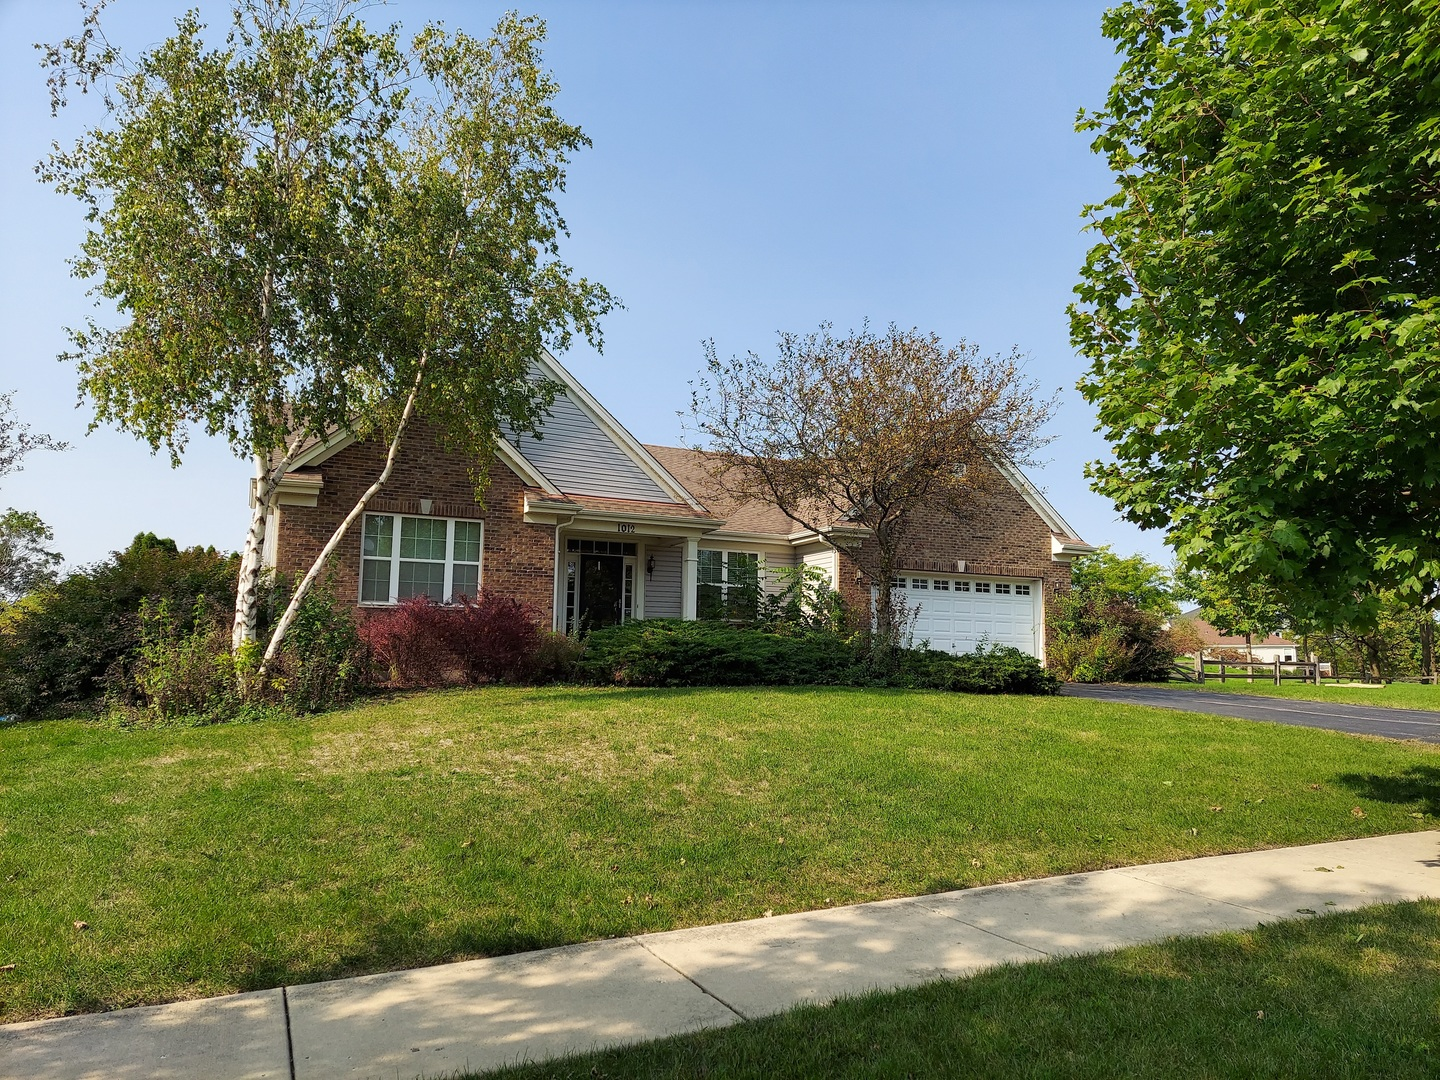 Photo for 1012 Nighthawk Way, Cary, IL 60013 (MLS # 10877820)